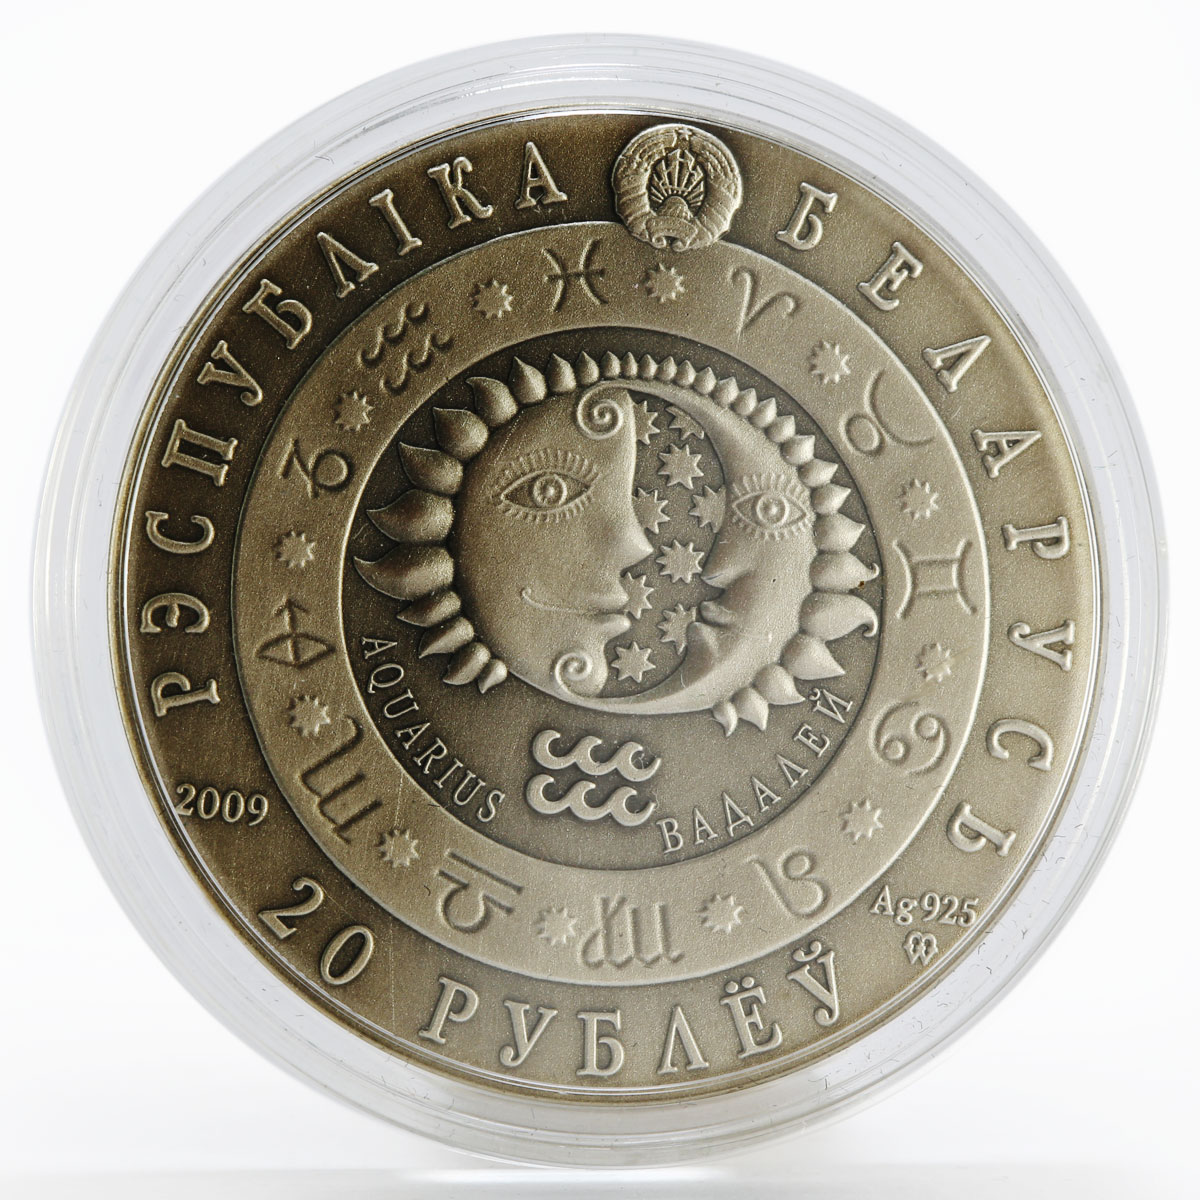 Belarus 20 rubles Zodiac Signs series Aquarius silver coin 2009